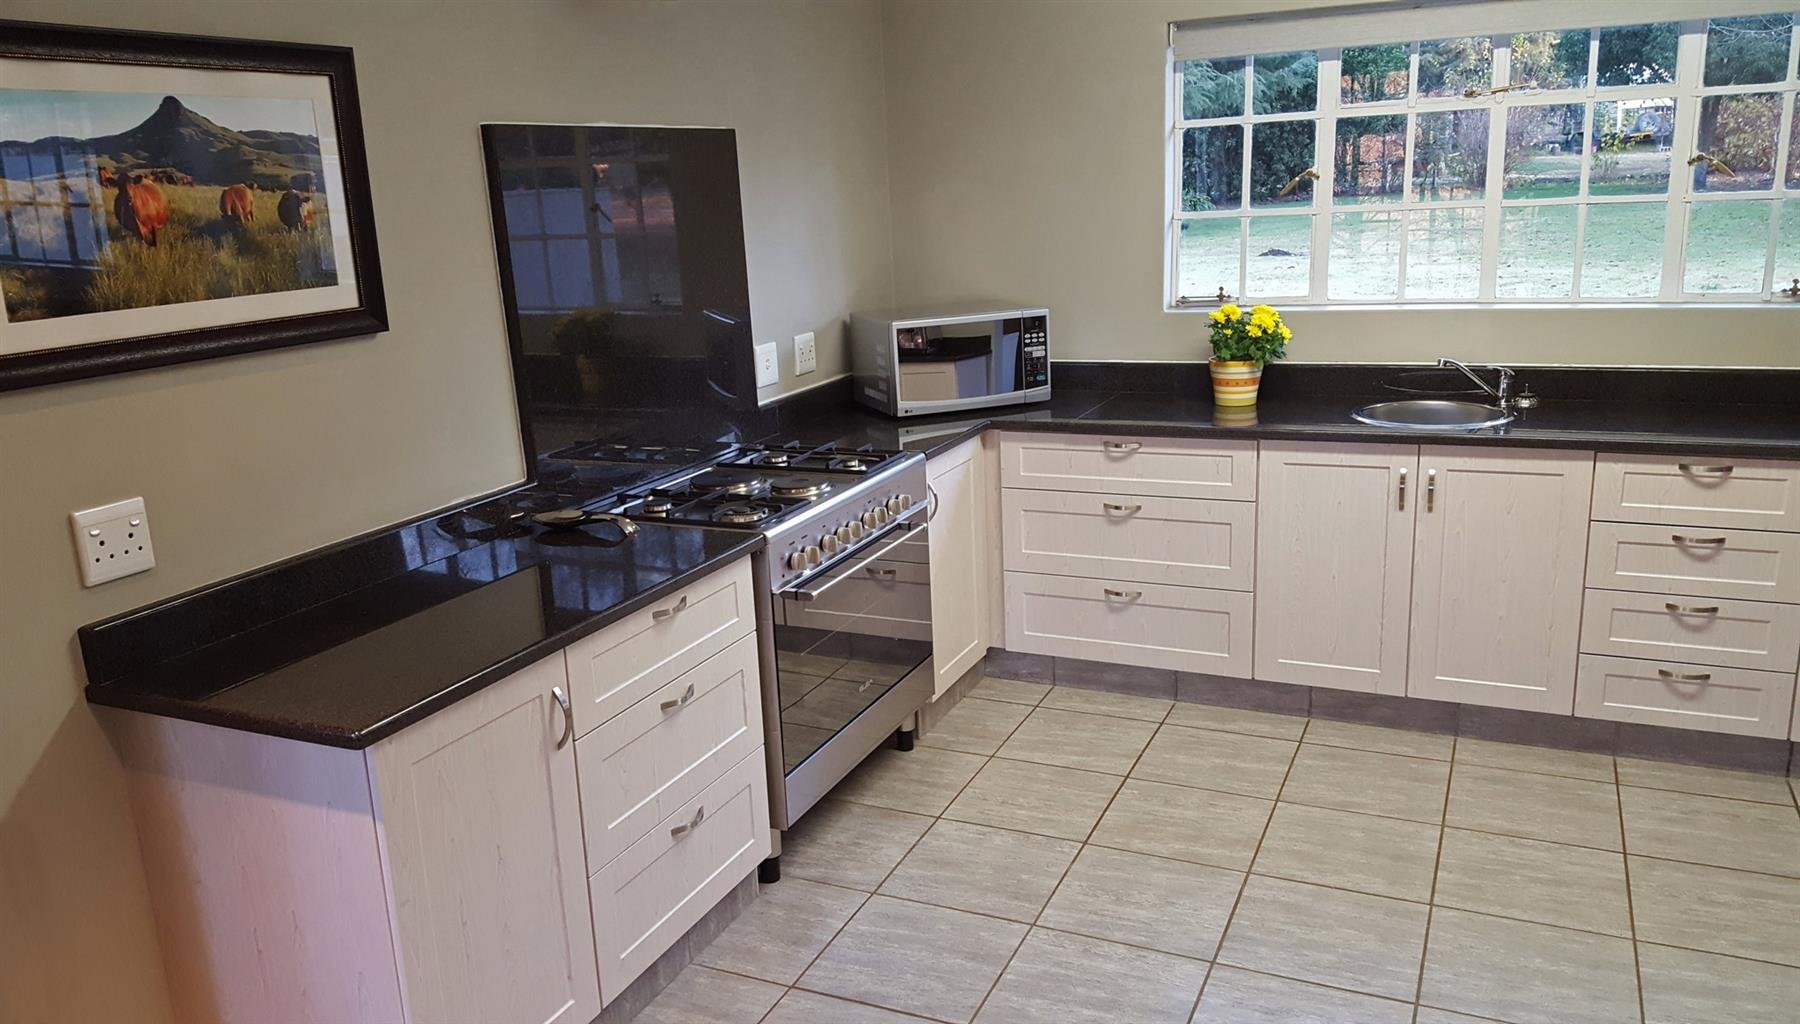 Copperleigh Trout Cottage - Midlands Meander Self-Catering